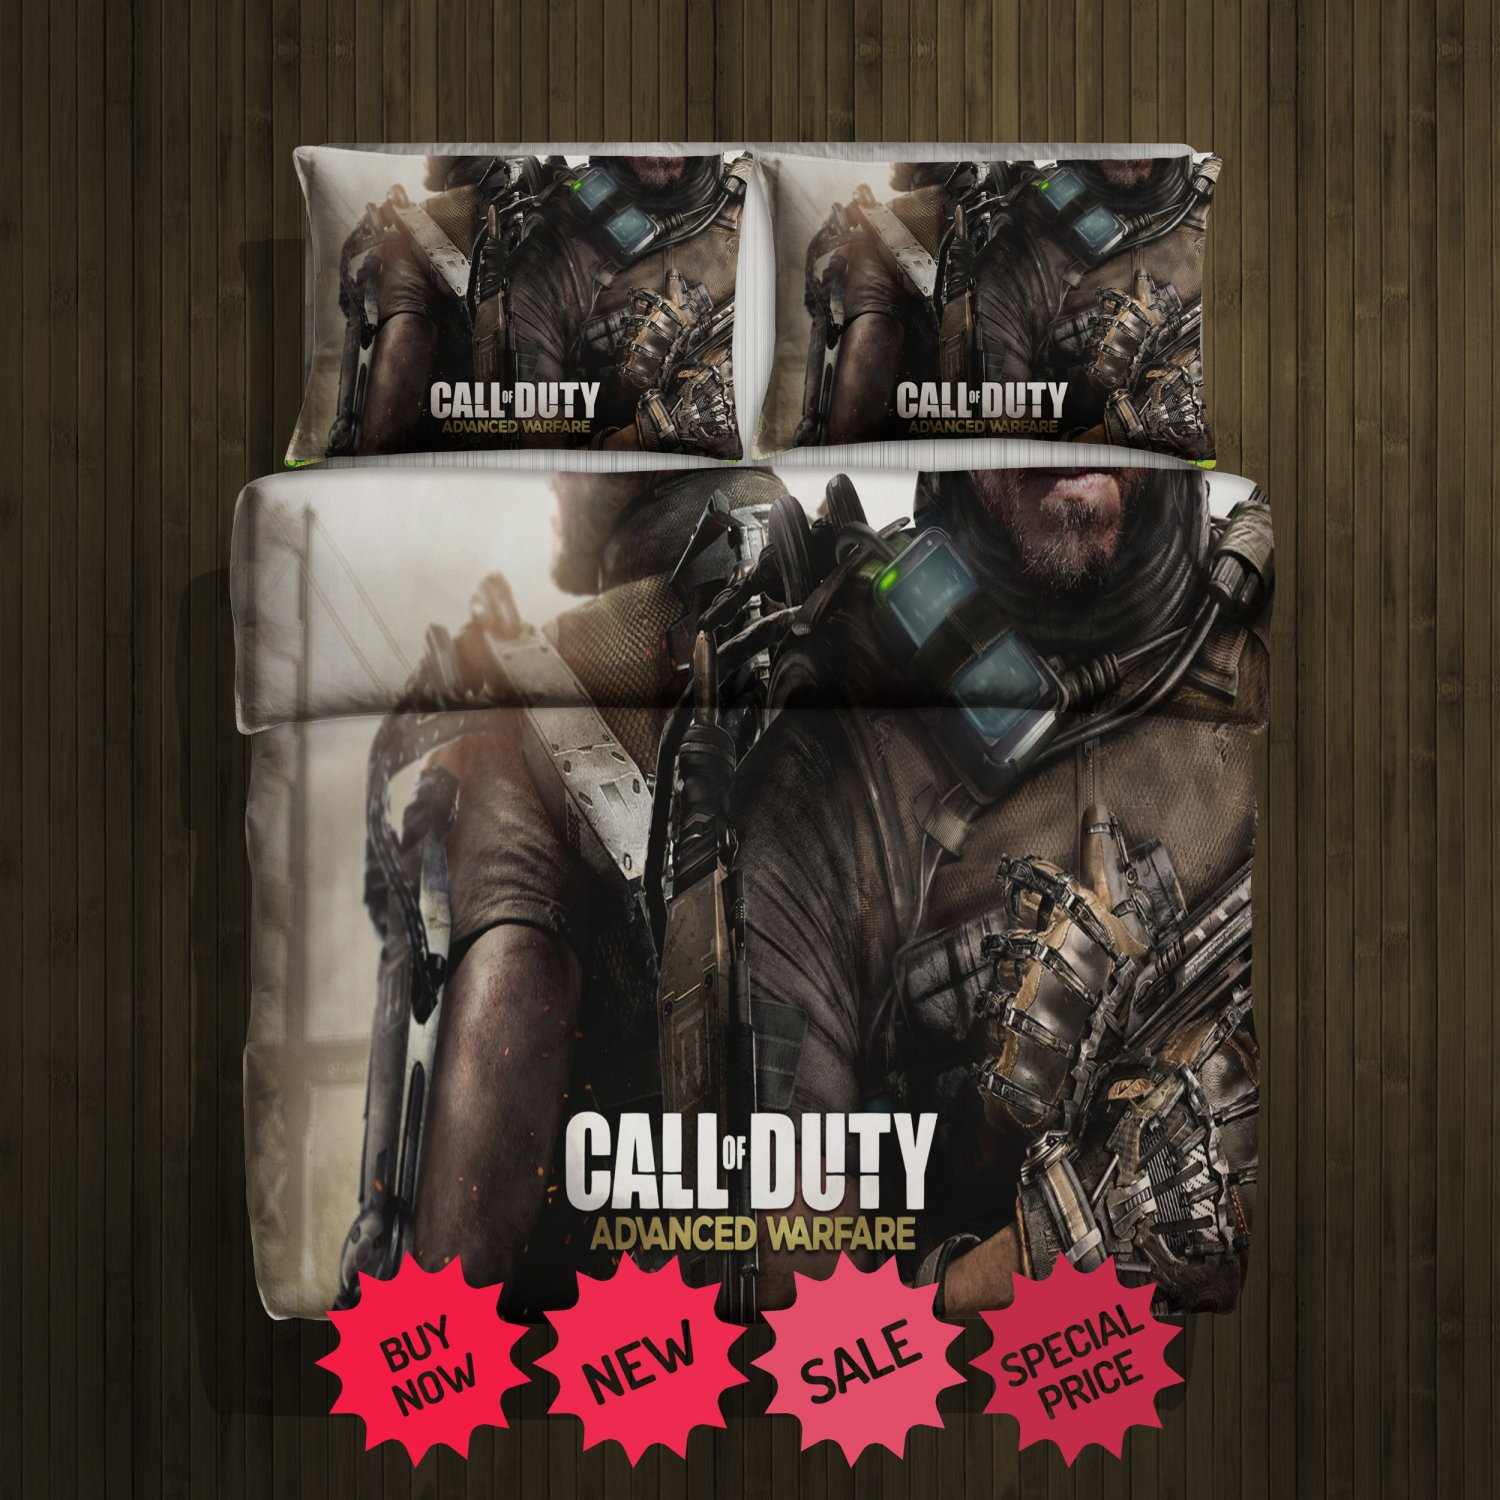 Call of Duty Blanket Large & 2 Pillow Cases #117931629  ,117932400   (2)